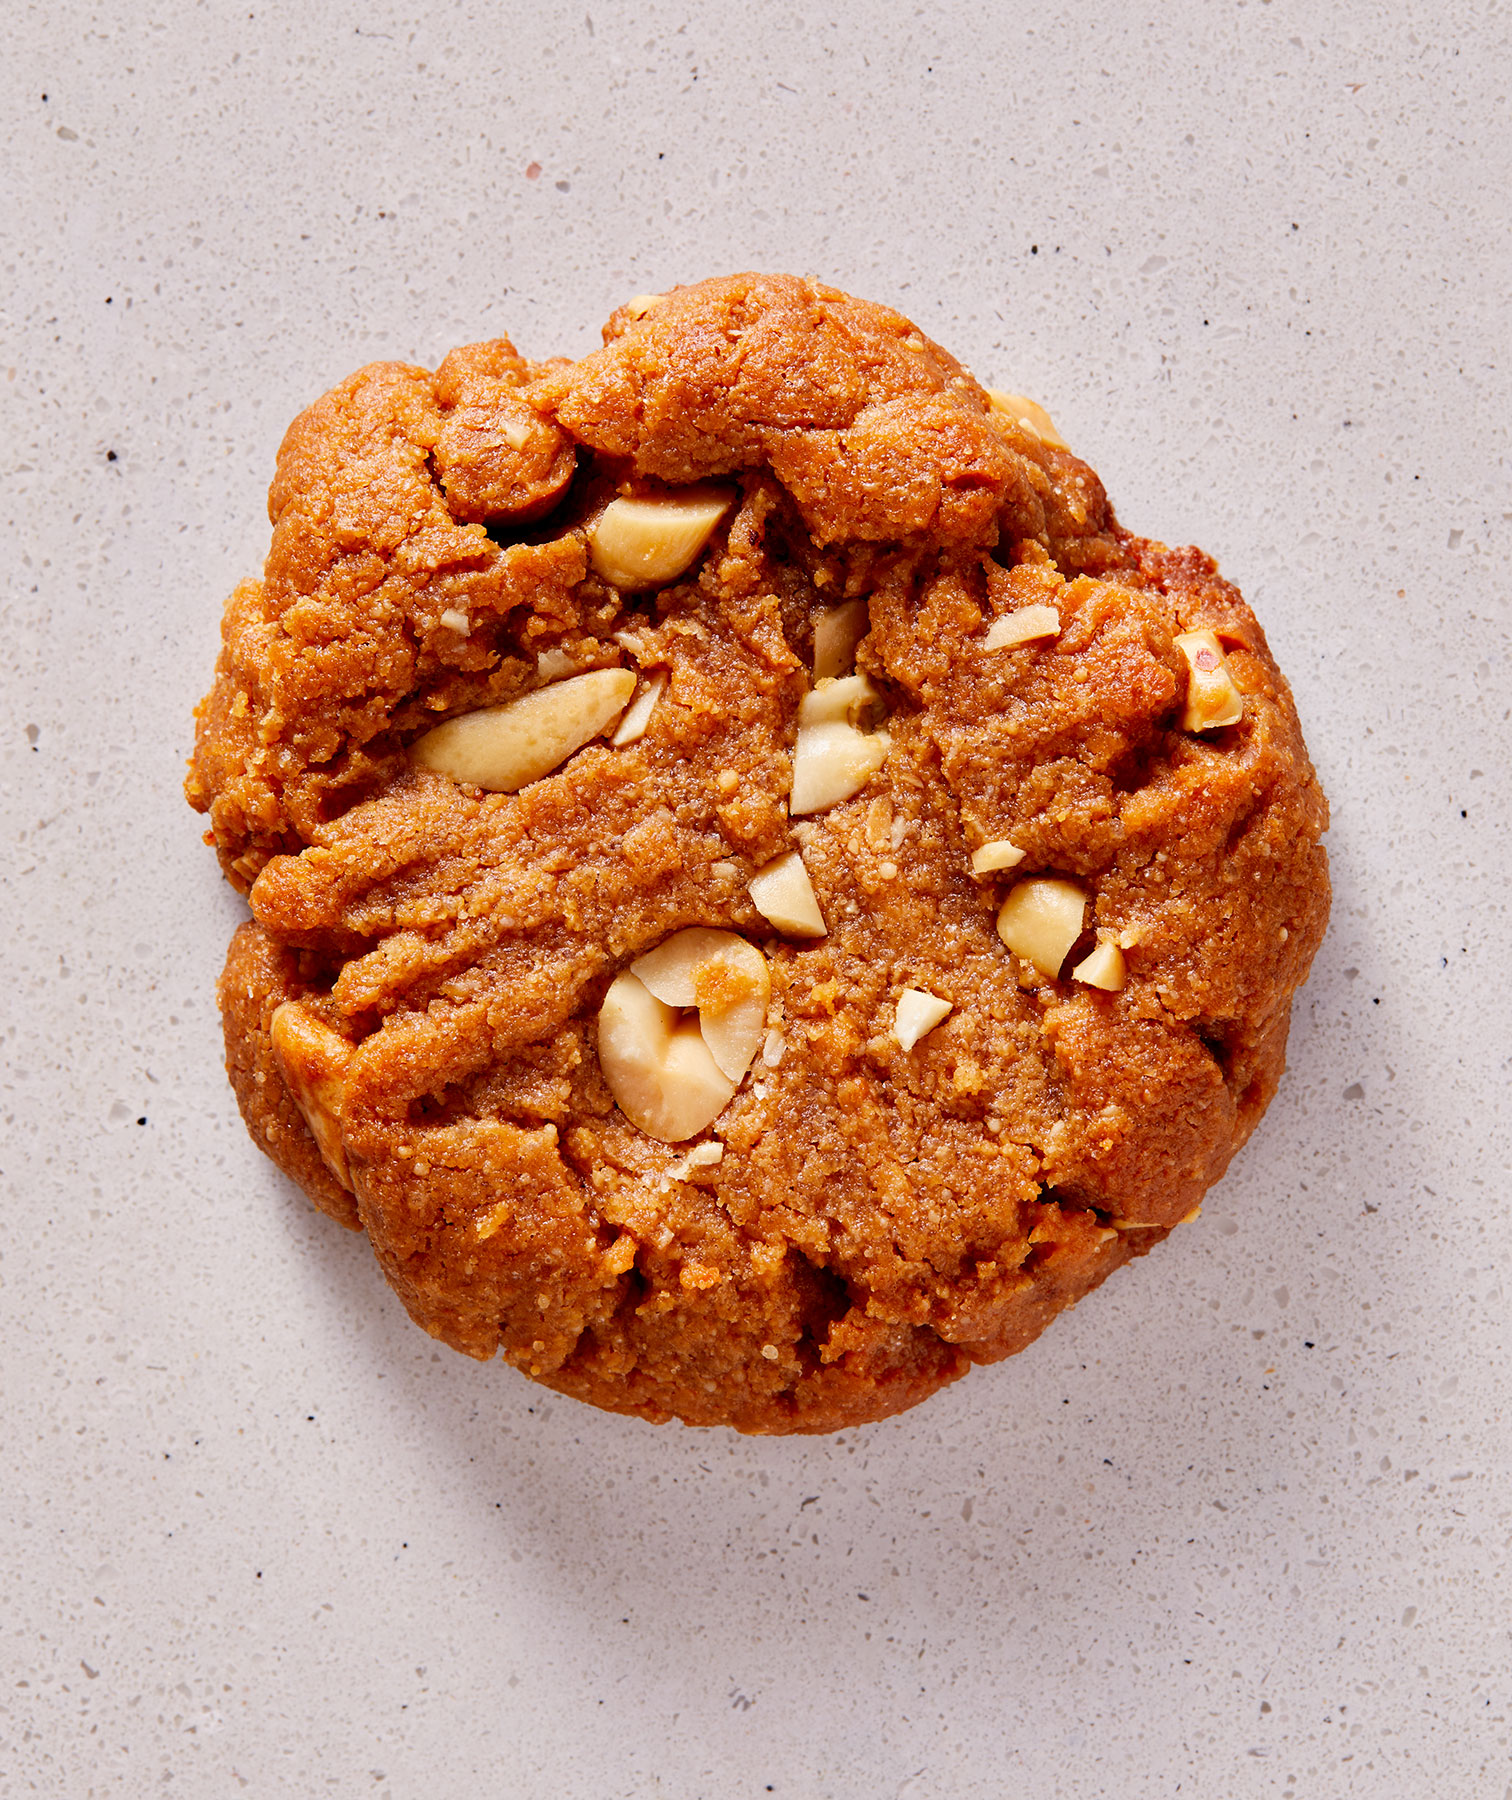 Super-Crunch Peanut Butter Cookies